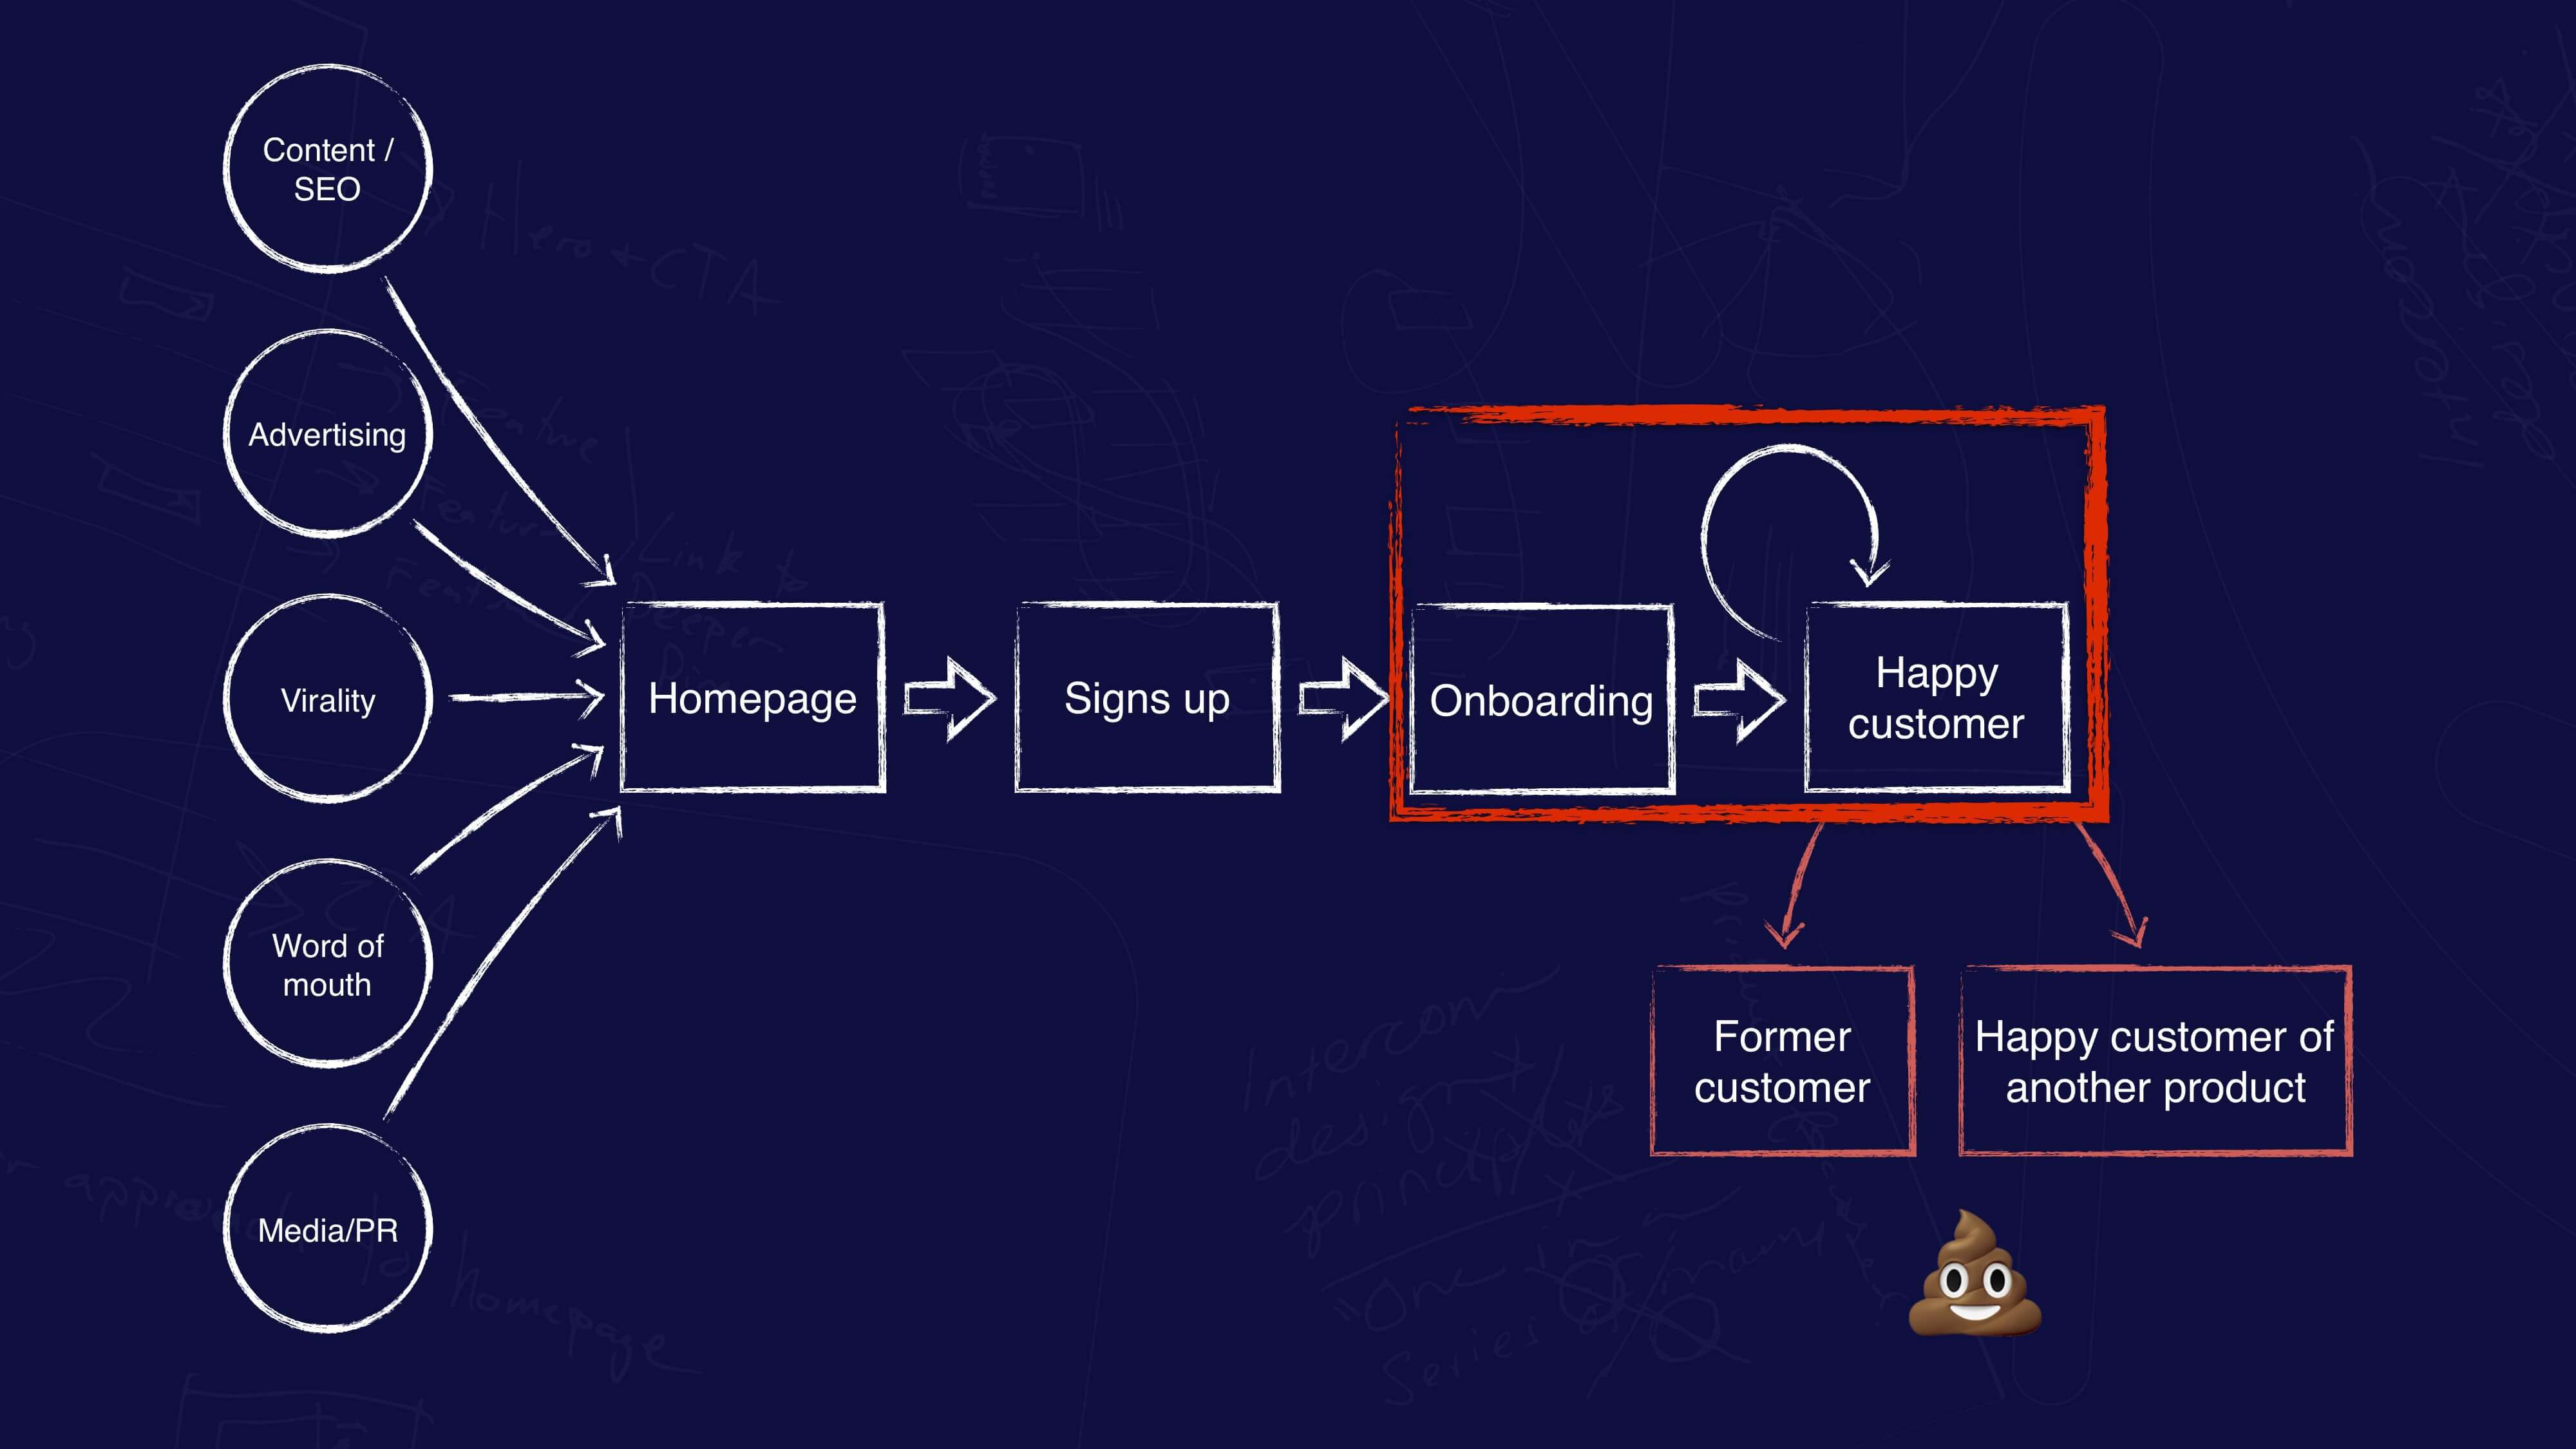 Customer onboarding and retention workflow